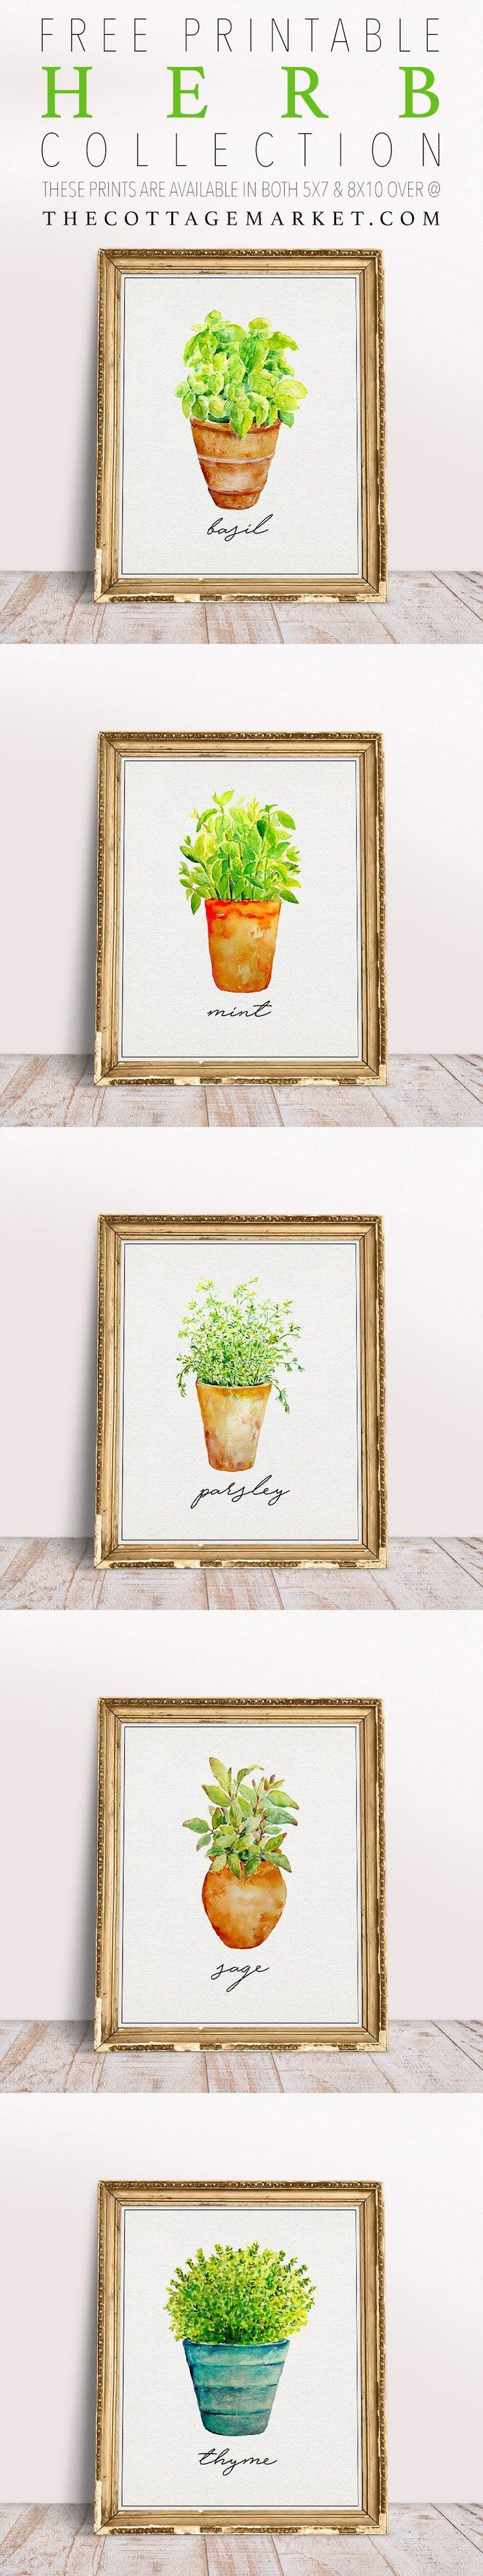 Free Printable Herb Collection This FIVE Piece Herb Collection is just waiting to hang on your wall!